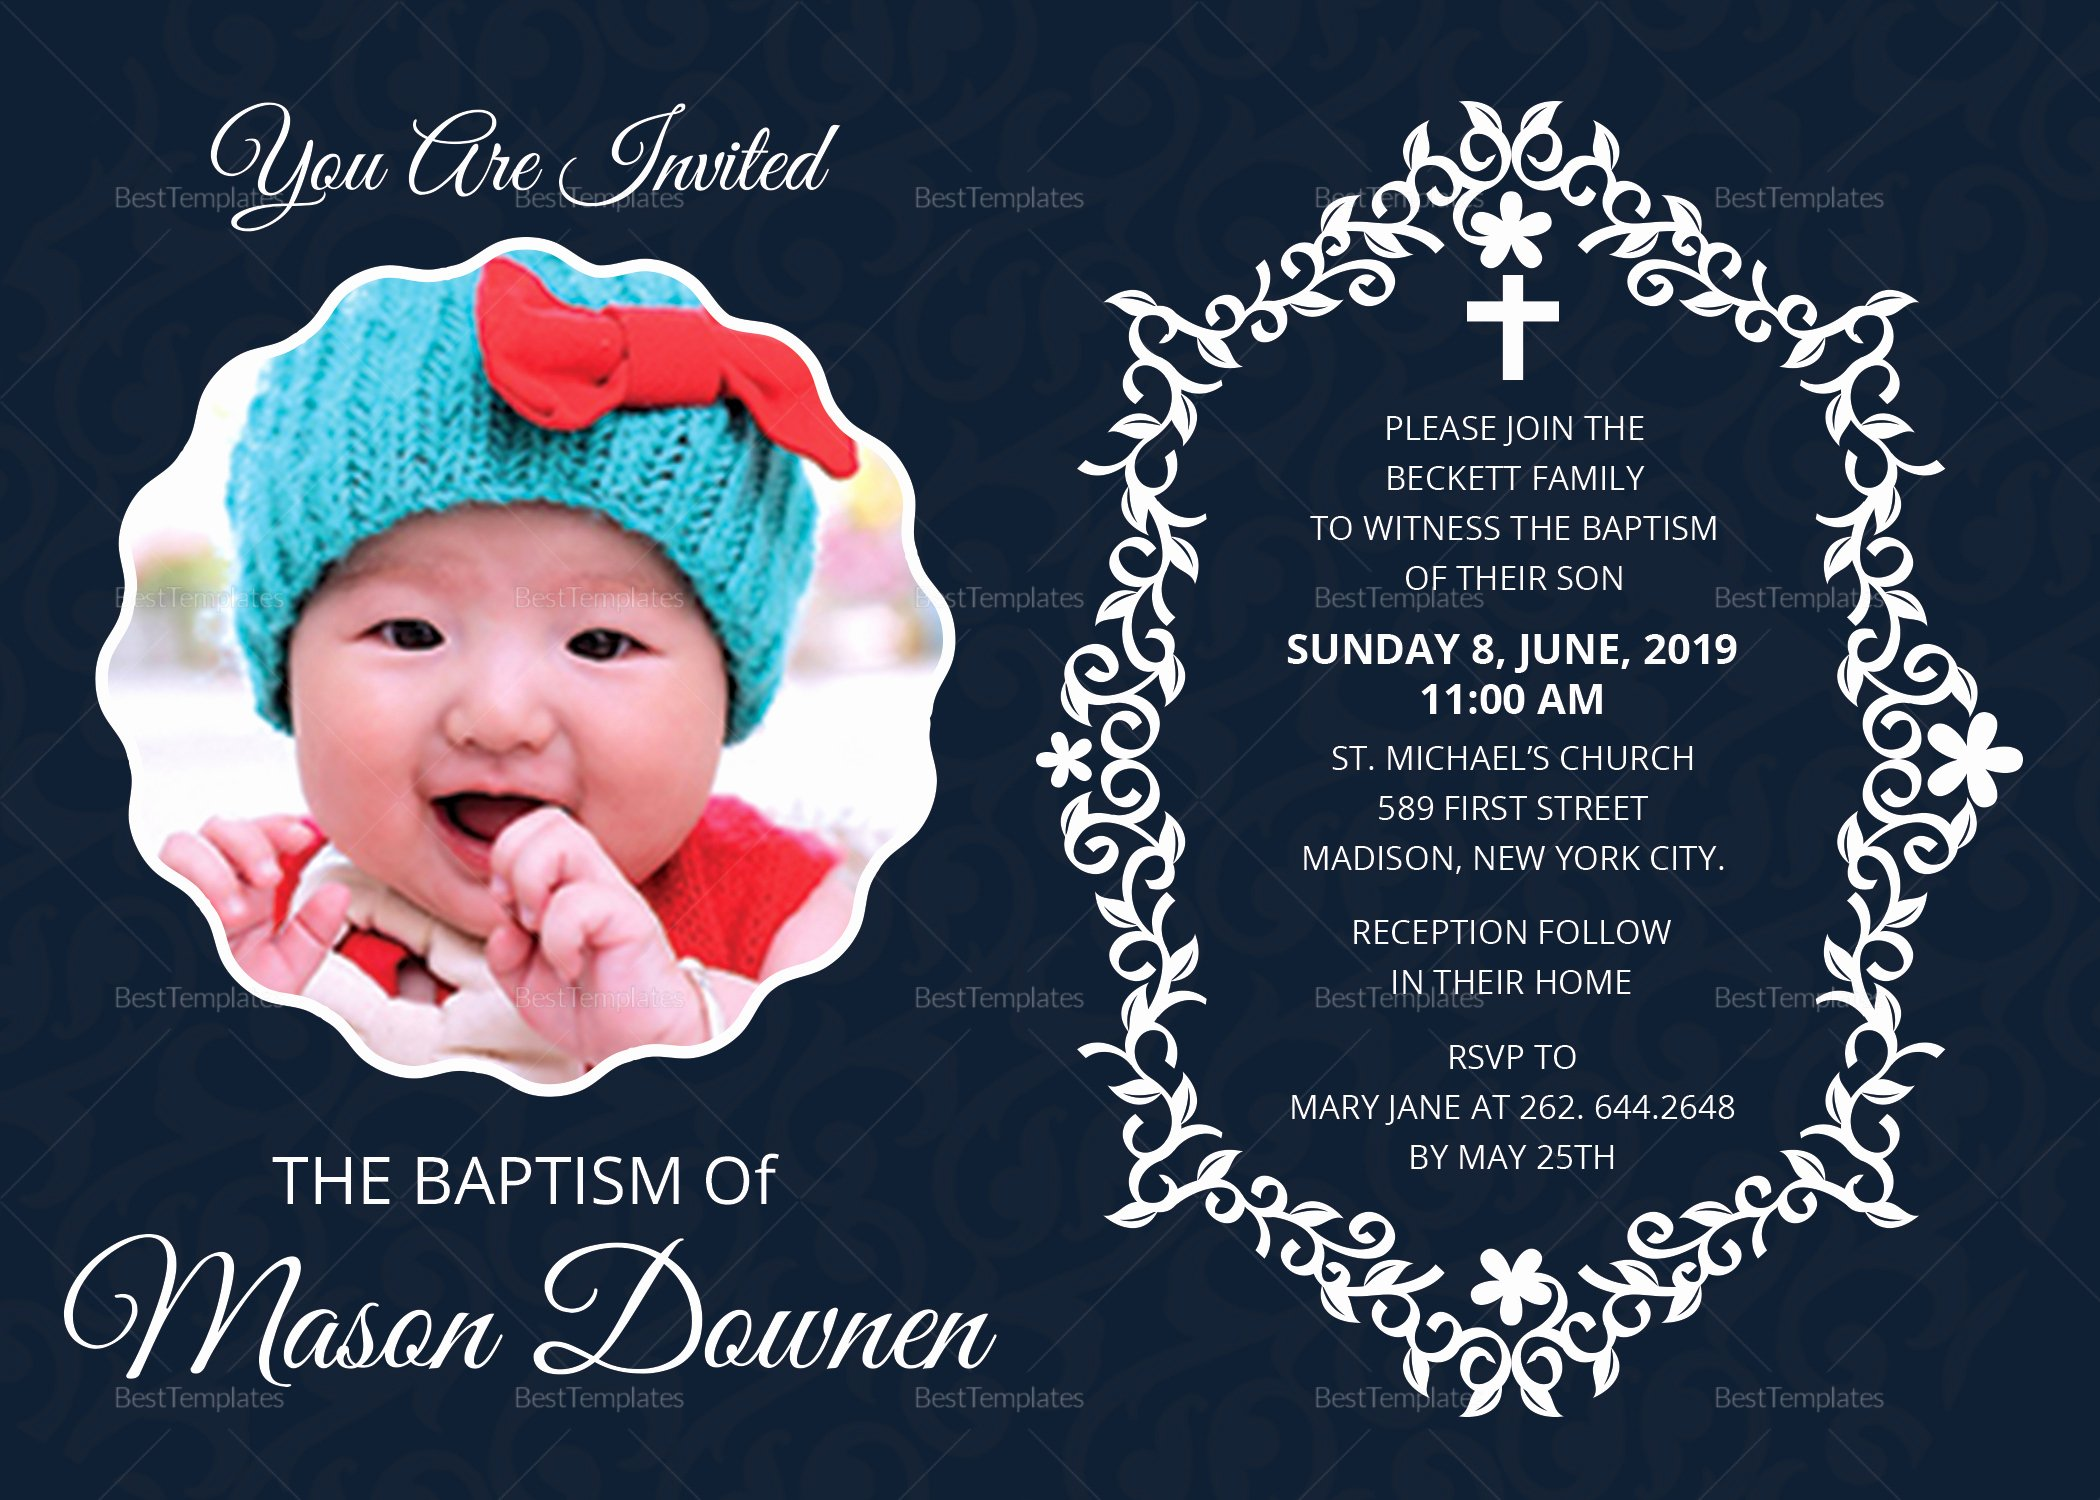 Baptism Invitation Template Microsoft Word Fresh Christening Baptism Invitation Design Template In Word Psd Publisher